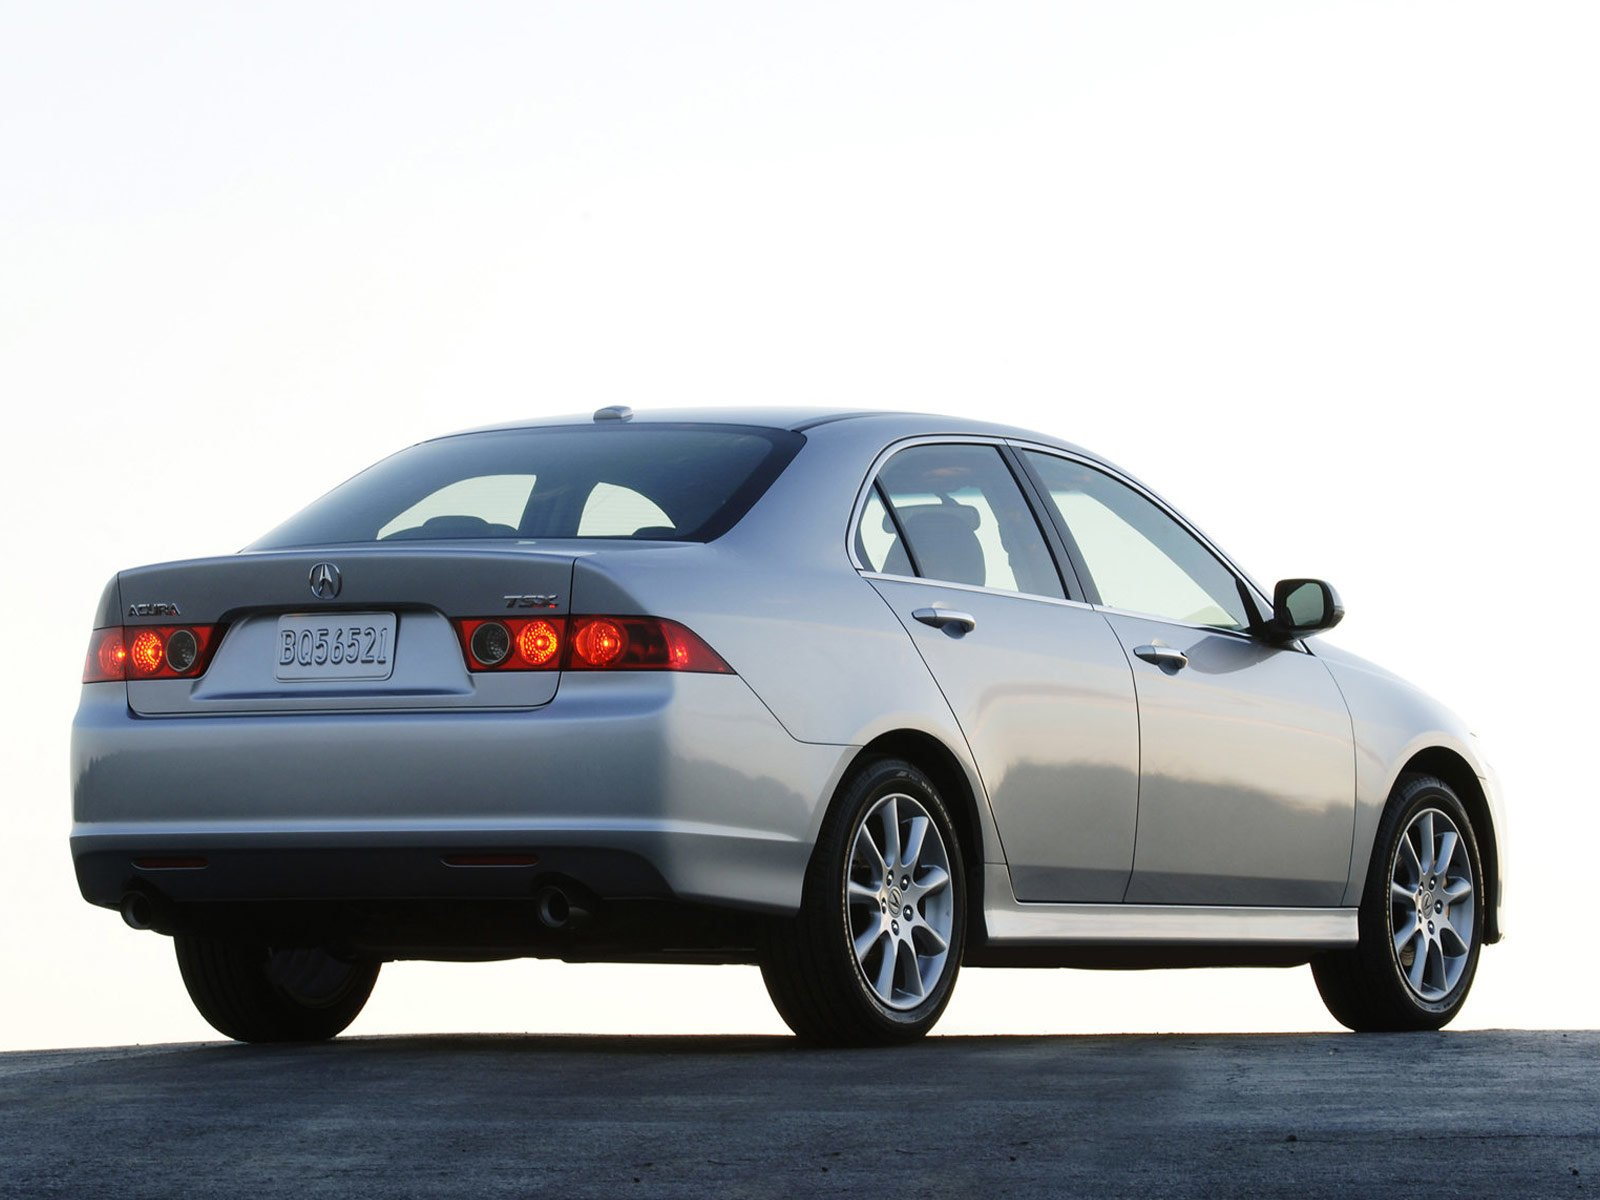 Latest 2007 Acura Tsx Japanese Car Photos Free Download